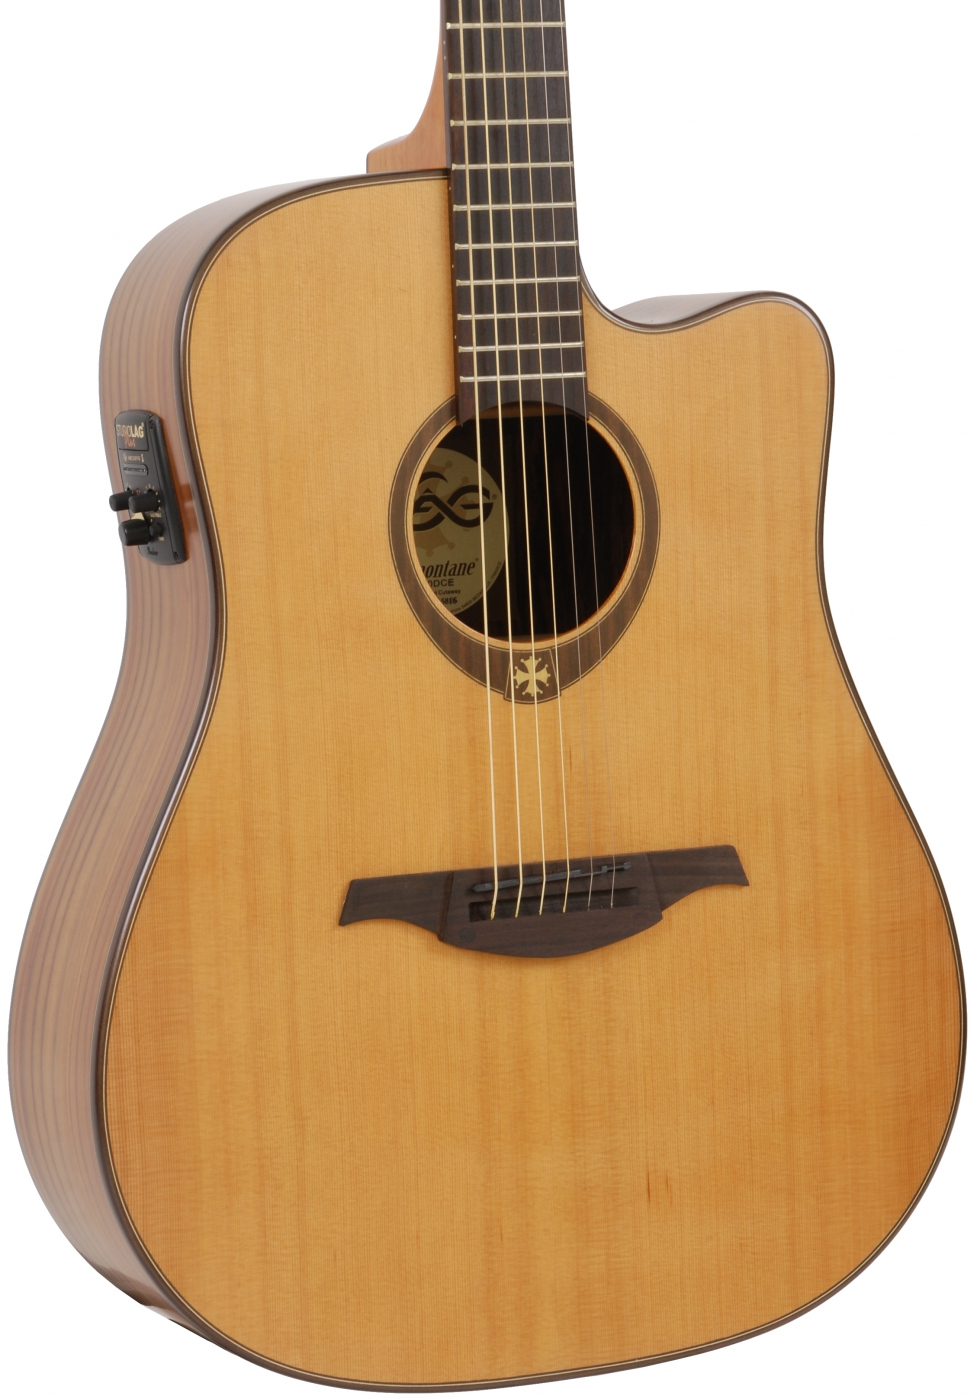 lag gla t300dce acoustic guitar with eq tramontane. Black Bedroom Furniture Sets. Home Design Ideas